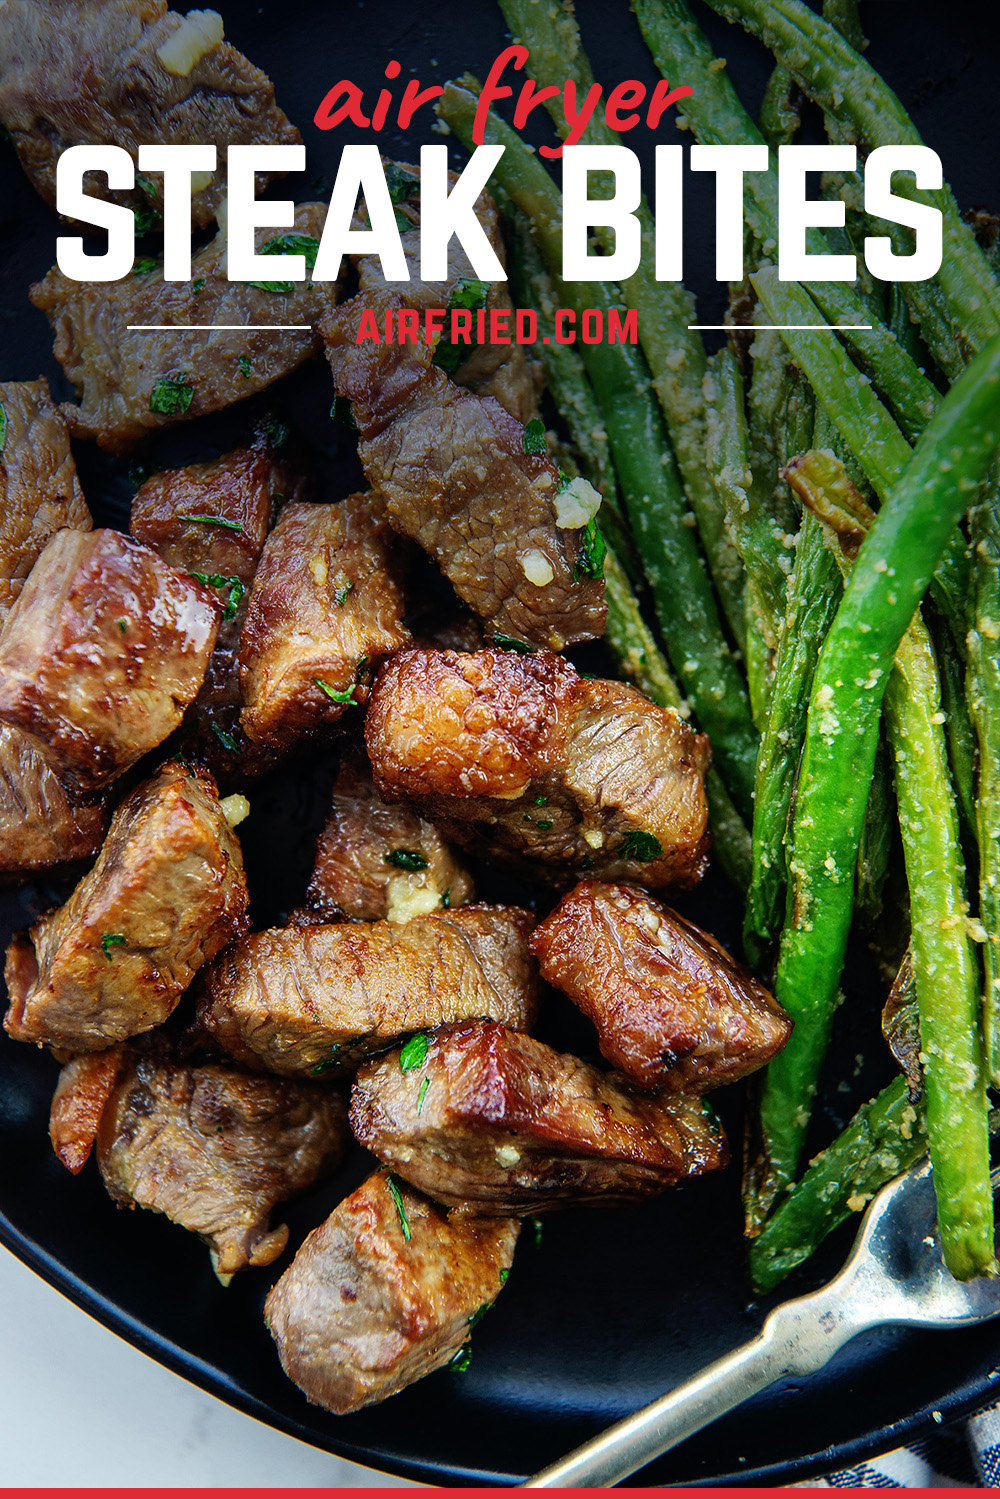 These steak bites are a great pairing with low carb side dishes for a keto friendly meal option.  The cook so evenly in the air fryer, everyone will love them!